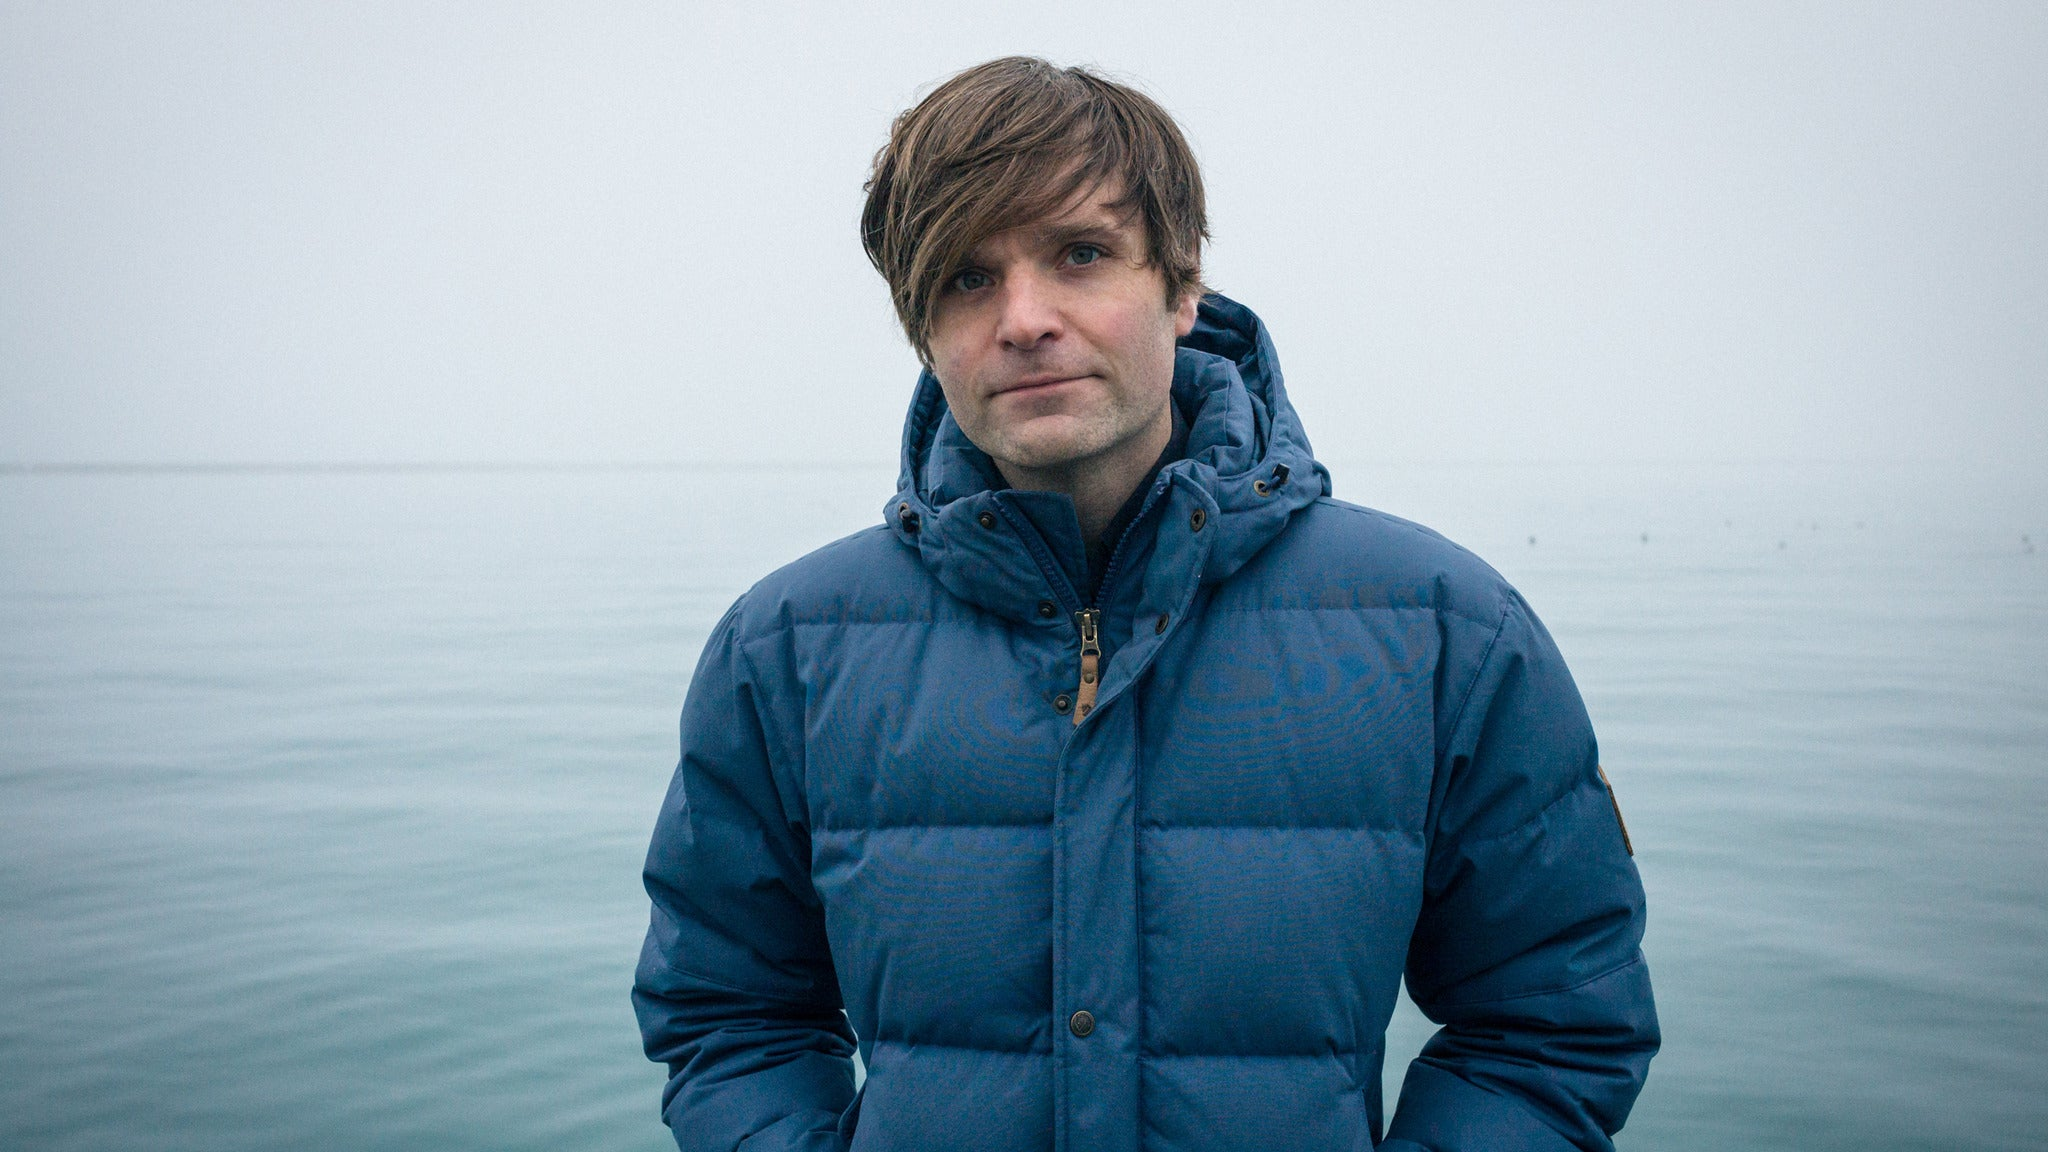 Ben Gibbard (of Death Cab for Cutie and The Postal Service)